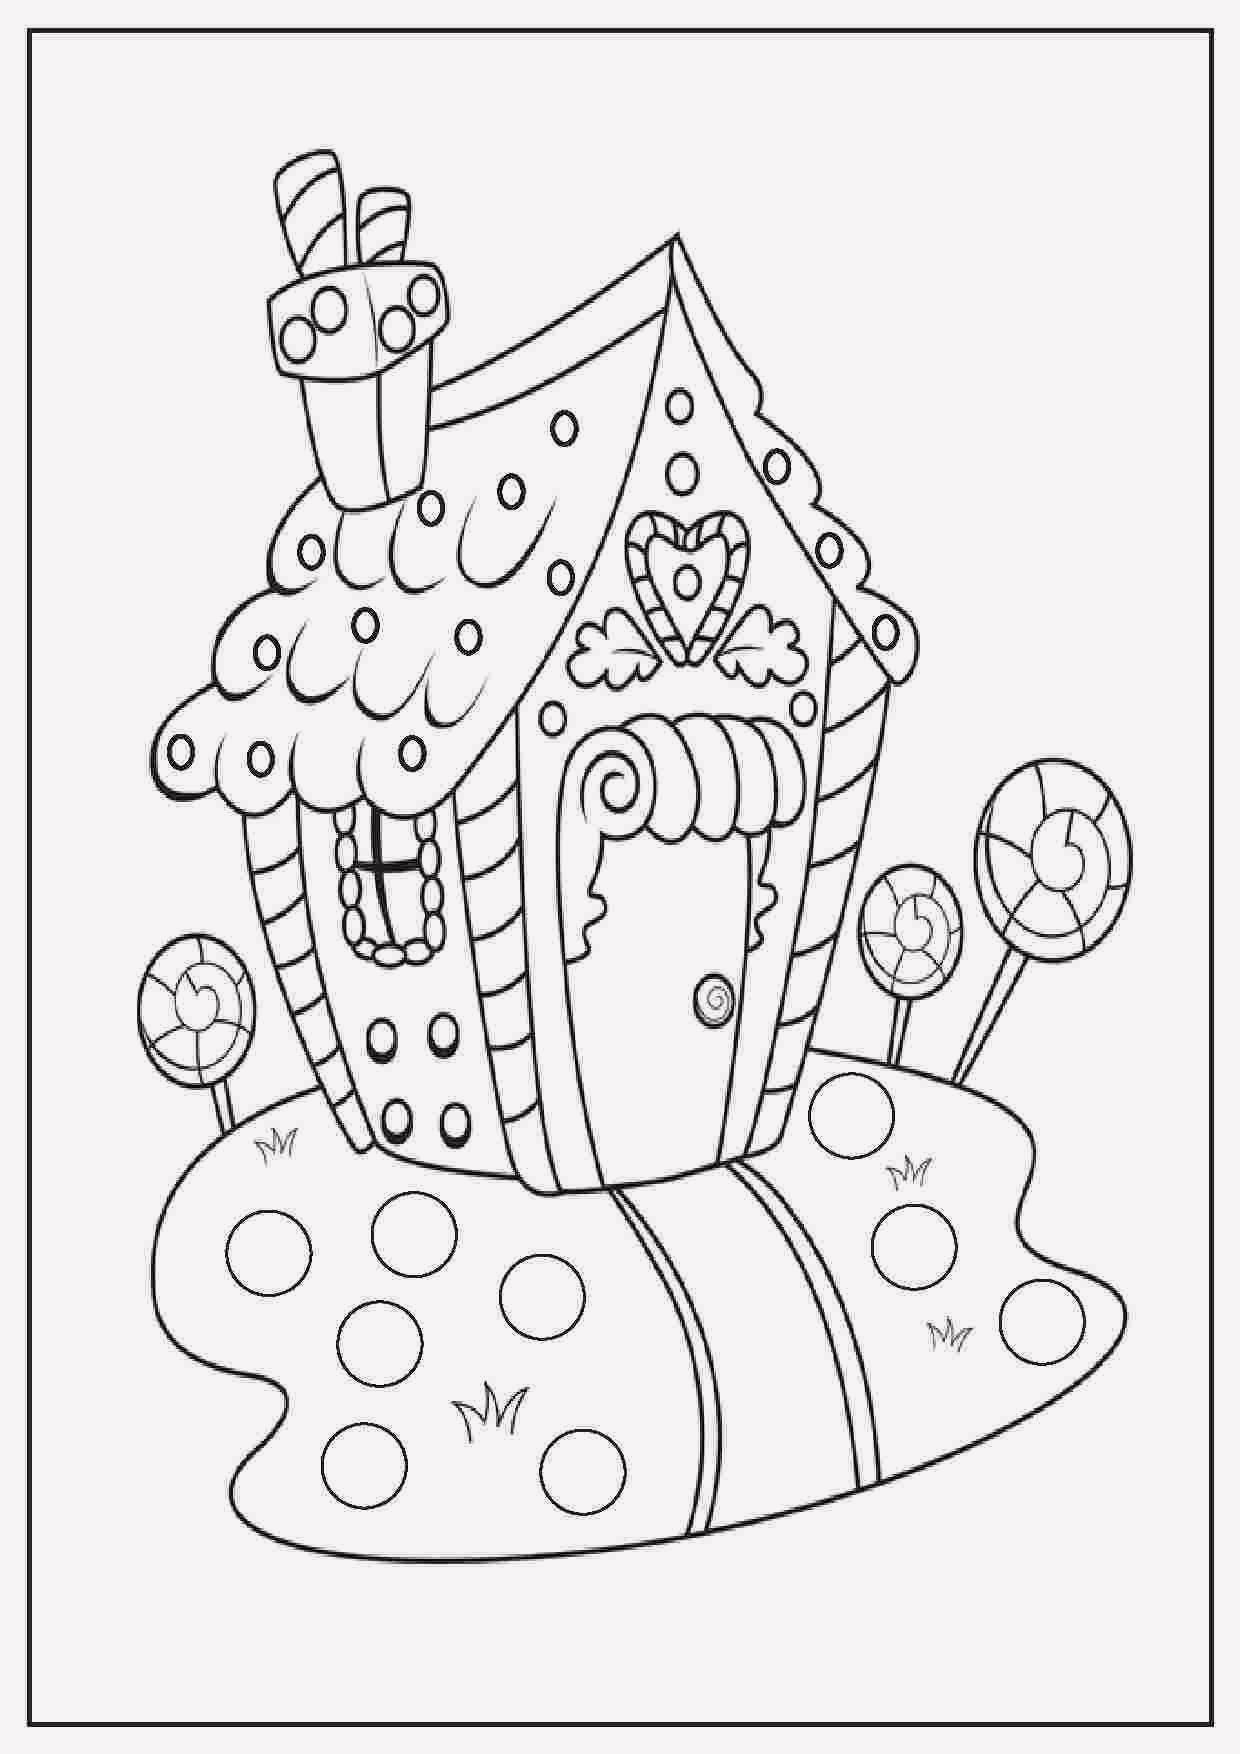 16 Printable Coloring Pages For Preschoolers Free In